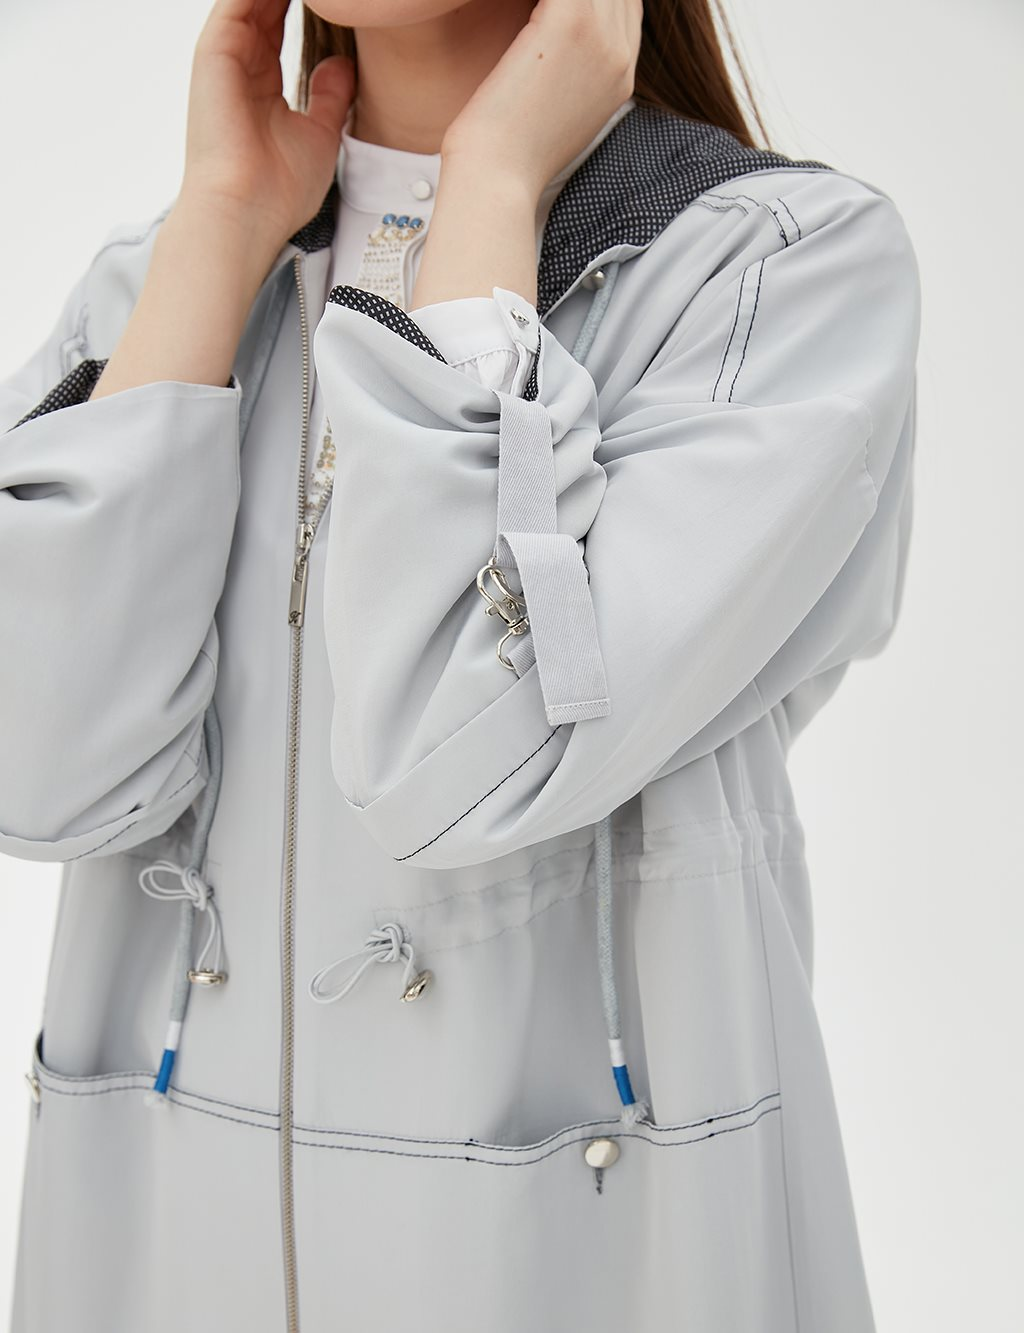 Ruched Coat With Hood B20 24006 Grey